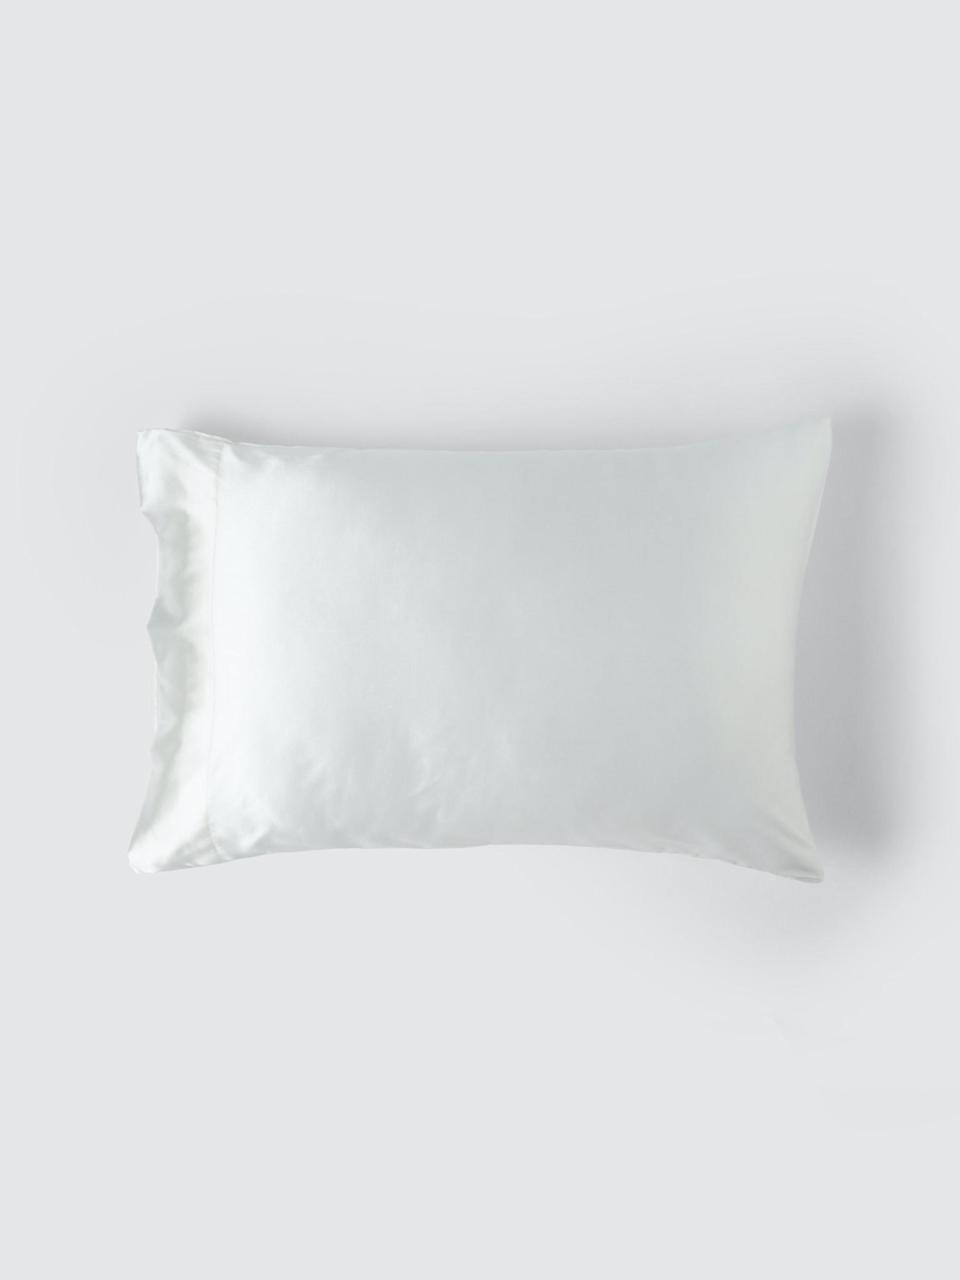 "<h2>Vegan Satin Pillowcase</h2><br>This stunning (and ethically made) pillowcase lets you enjoy the benefits of silk without going against your personal values.<br><br><strong><em><a href=""https://www.verishop.com/brand/night"" rel=""nofollow noopener"" target=""_blank"" data-ylk=""slk:Shop Verishop"" class=""link rapid-noclick-resp"">Shop Verishop</a></em></strong> <br><br><strong>Night</strong> Vegan Satin Pillowcase, $, available at <a href=""https://go.skimresources.com/?id=30283X879131&url=https%3A%2F%2Fwww.verishop.com%2Fnight%2Fpillows%2Fvegan-satin-pillowcase%2Fp4346276937751%3Fcolor%3Dwhite"" rel=""nofollow noopener"" target=""_blank"" data-ylk=""slk:Verishop"" class=""link rapid-noclick-resp"">Verishop</a>"